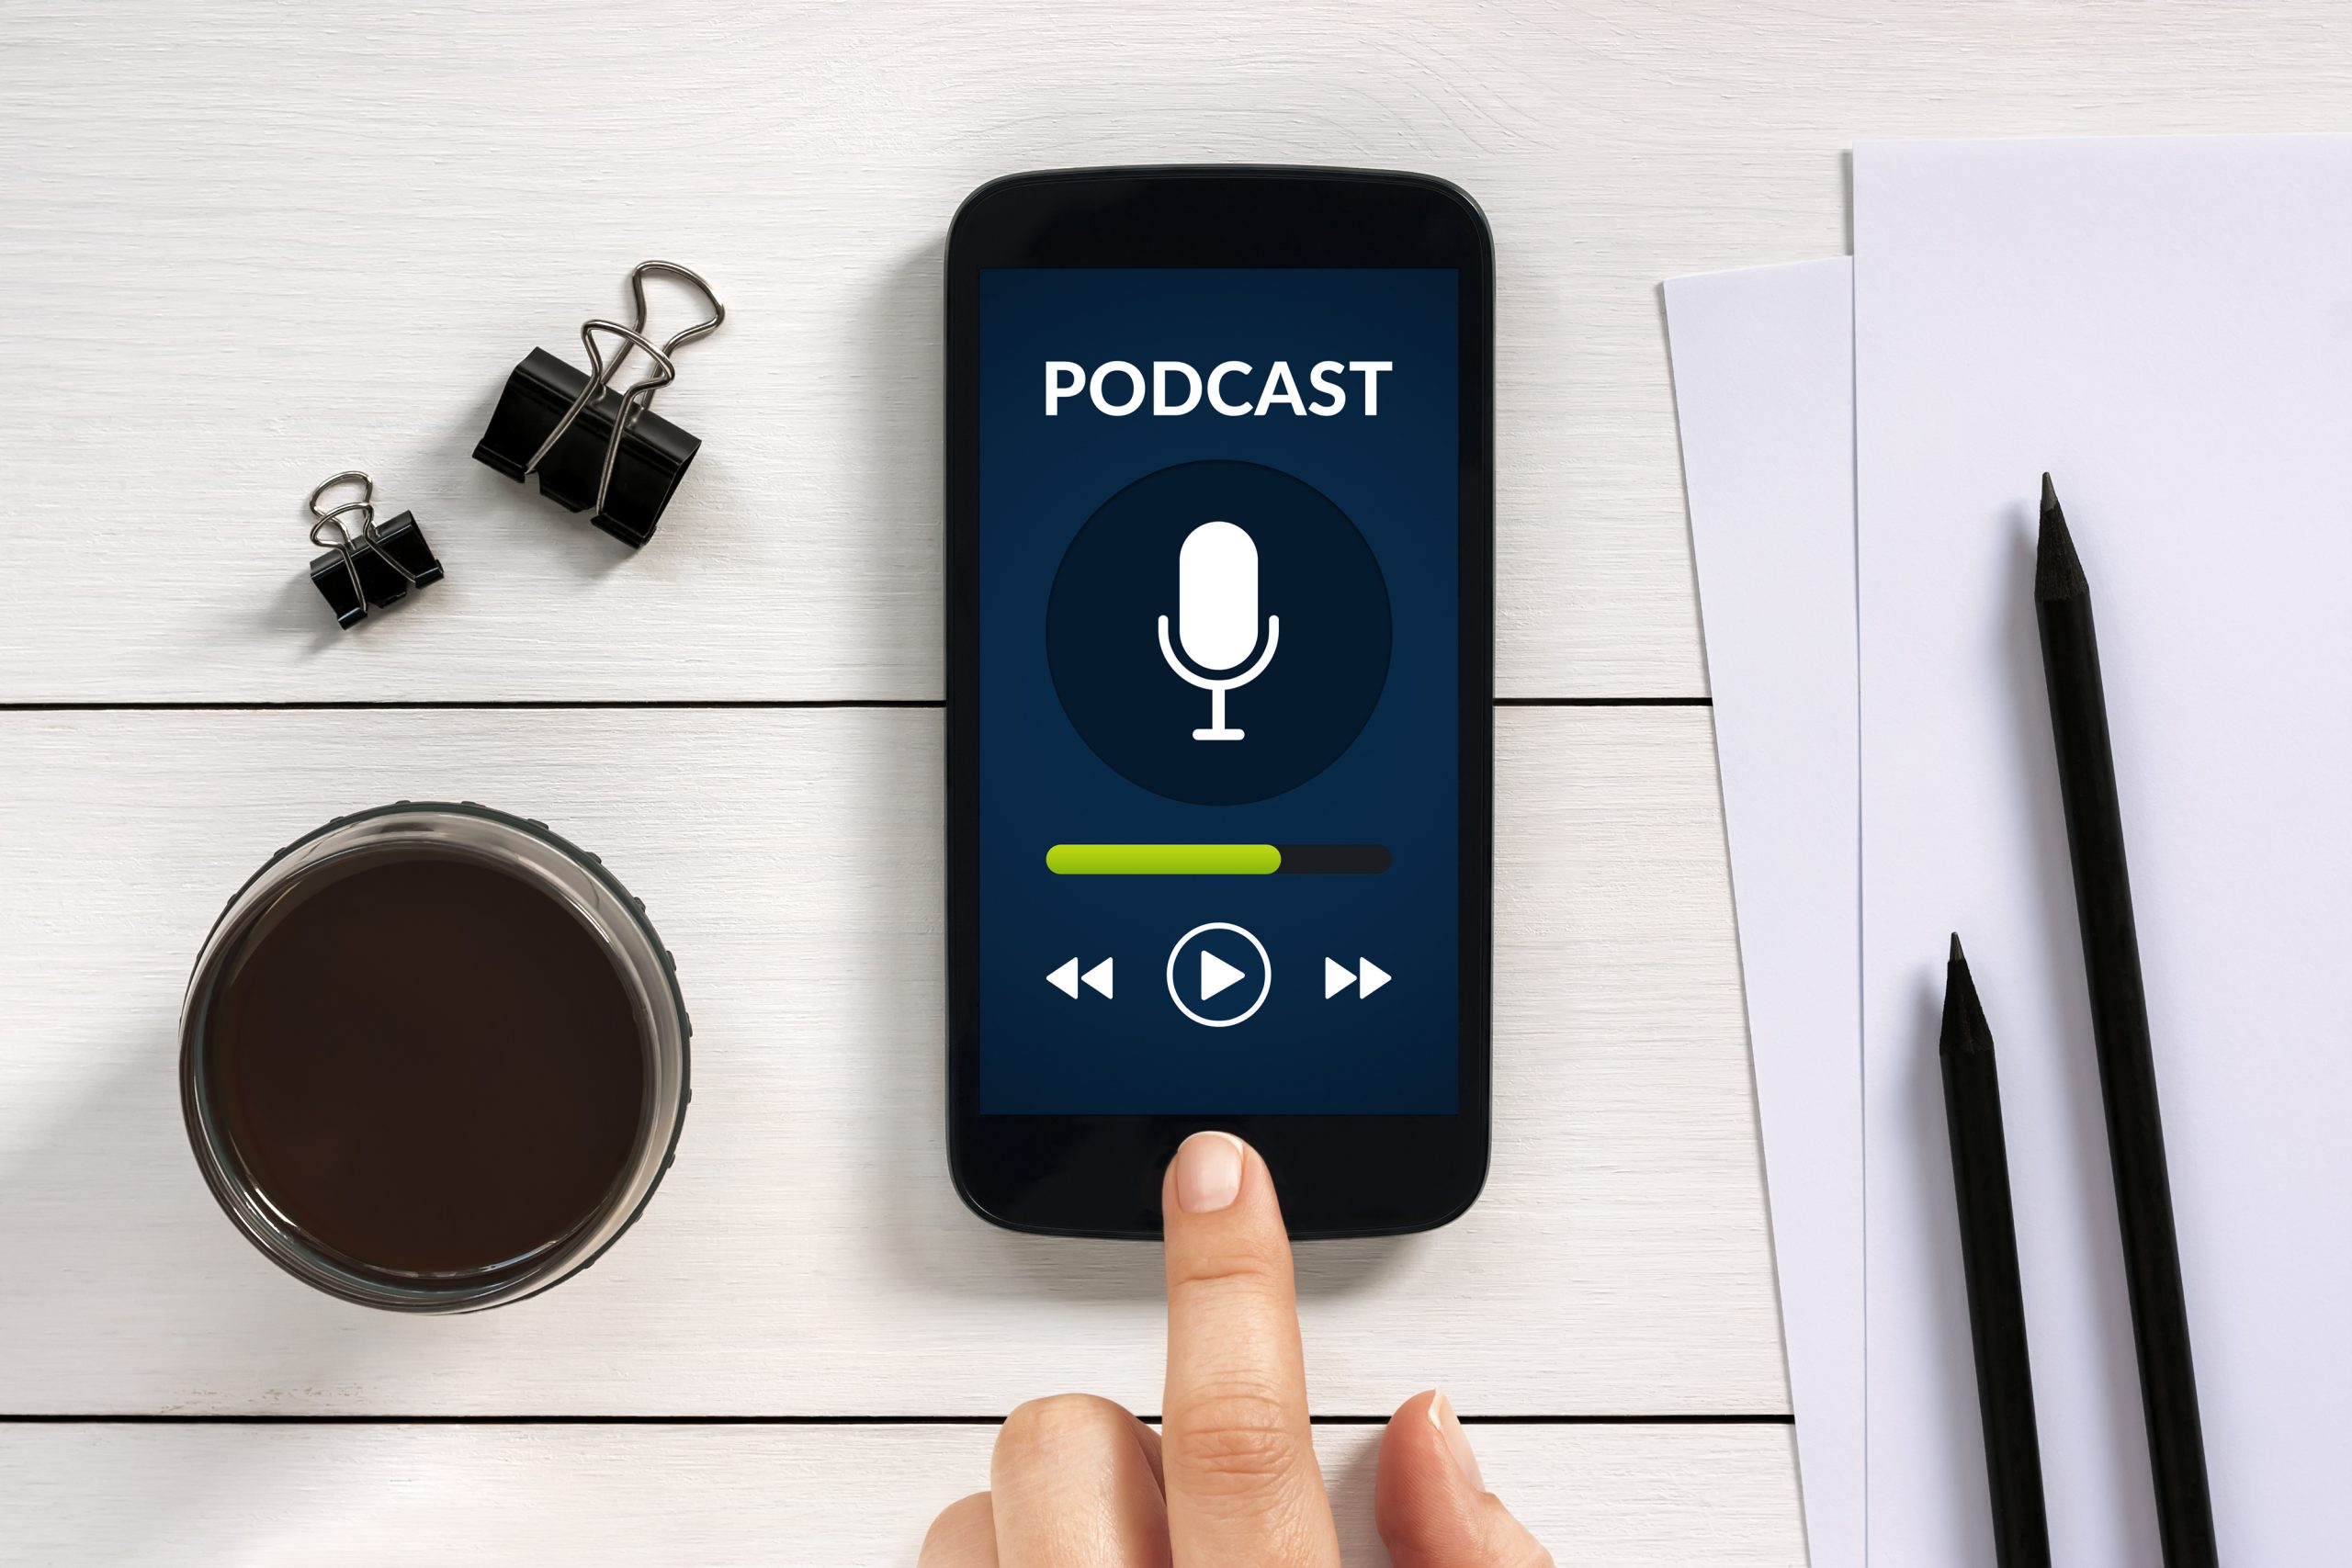 How to Record, Edit, and Publish a Podcast for $0.00